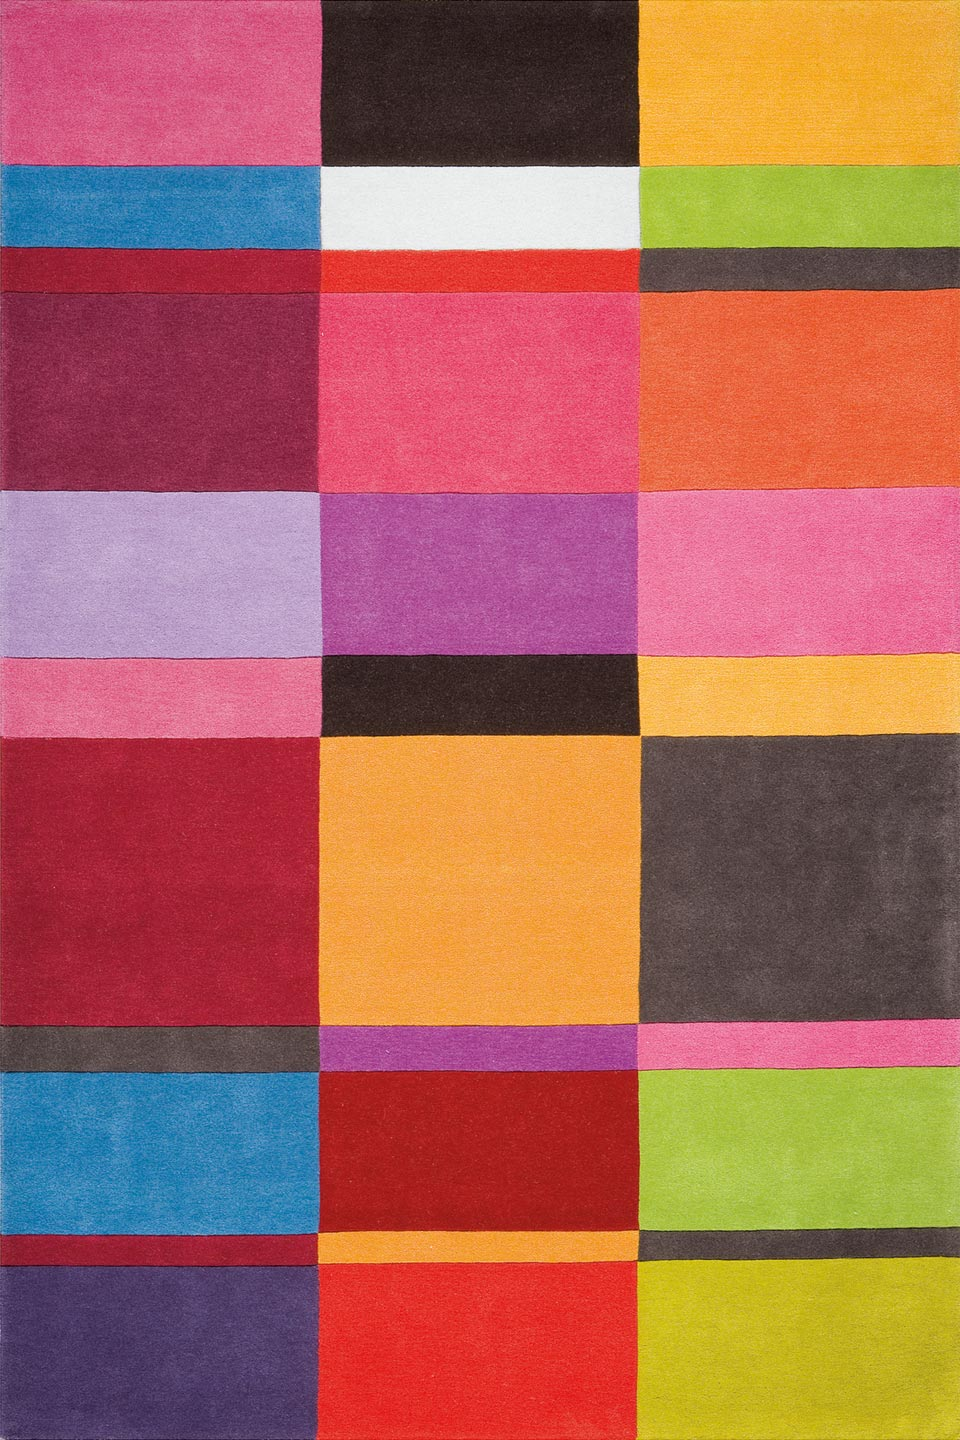 Tapis Multicolores Motif Rectangles Unis Ligne Pure Tapis Contemporains Fabriqu S La Main